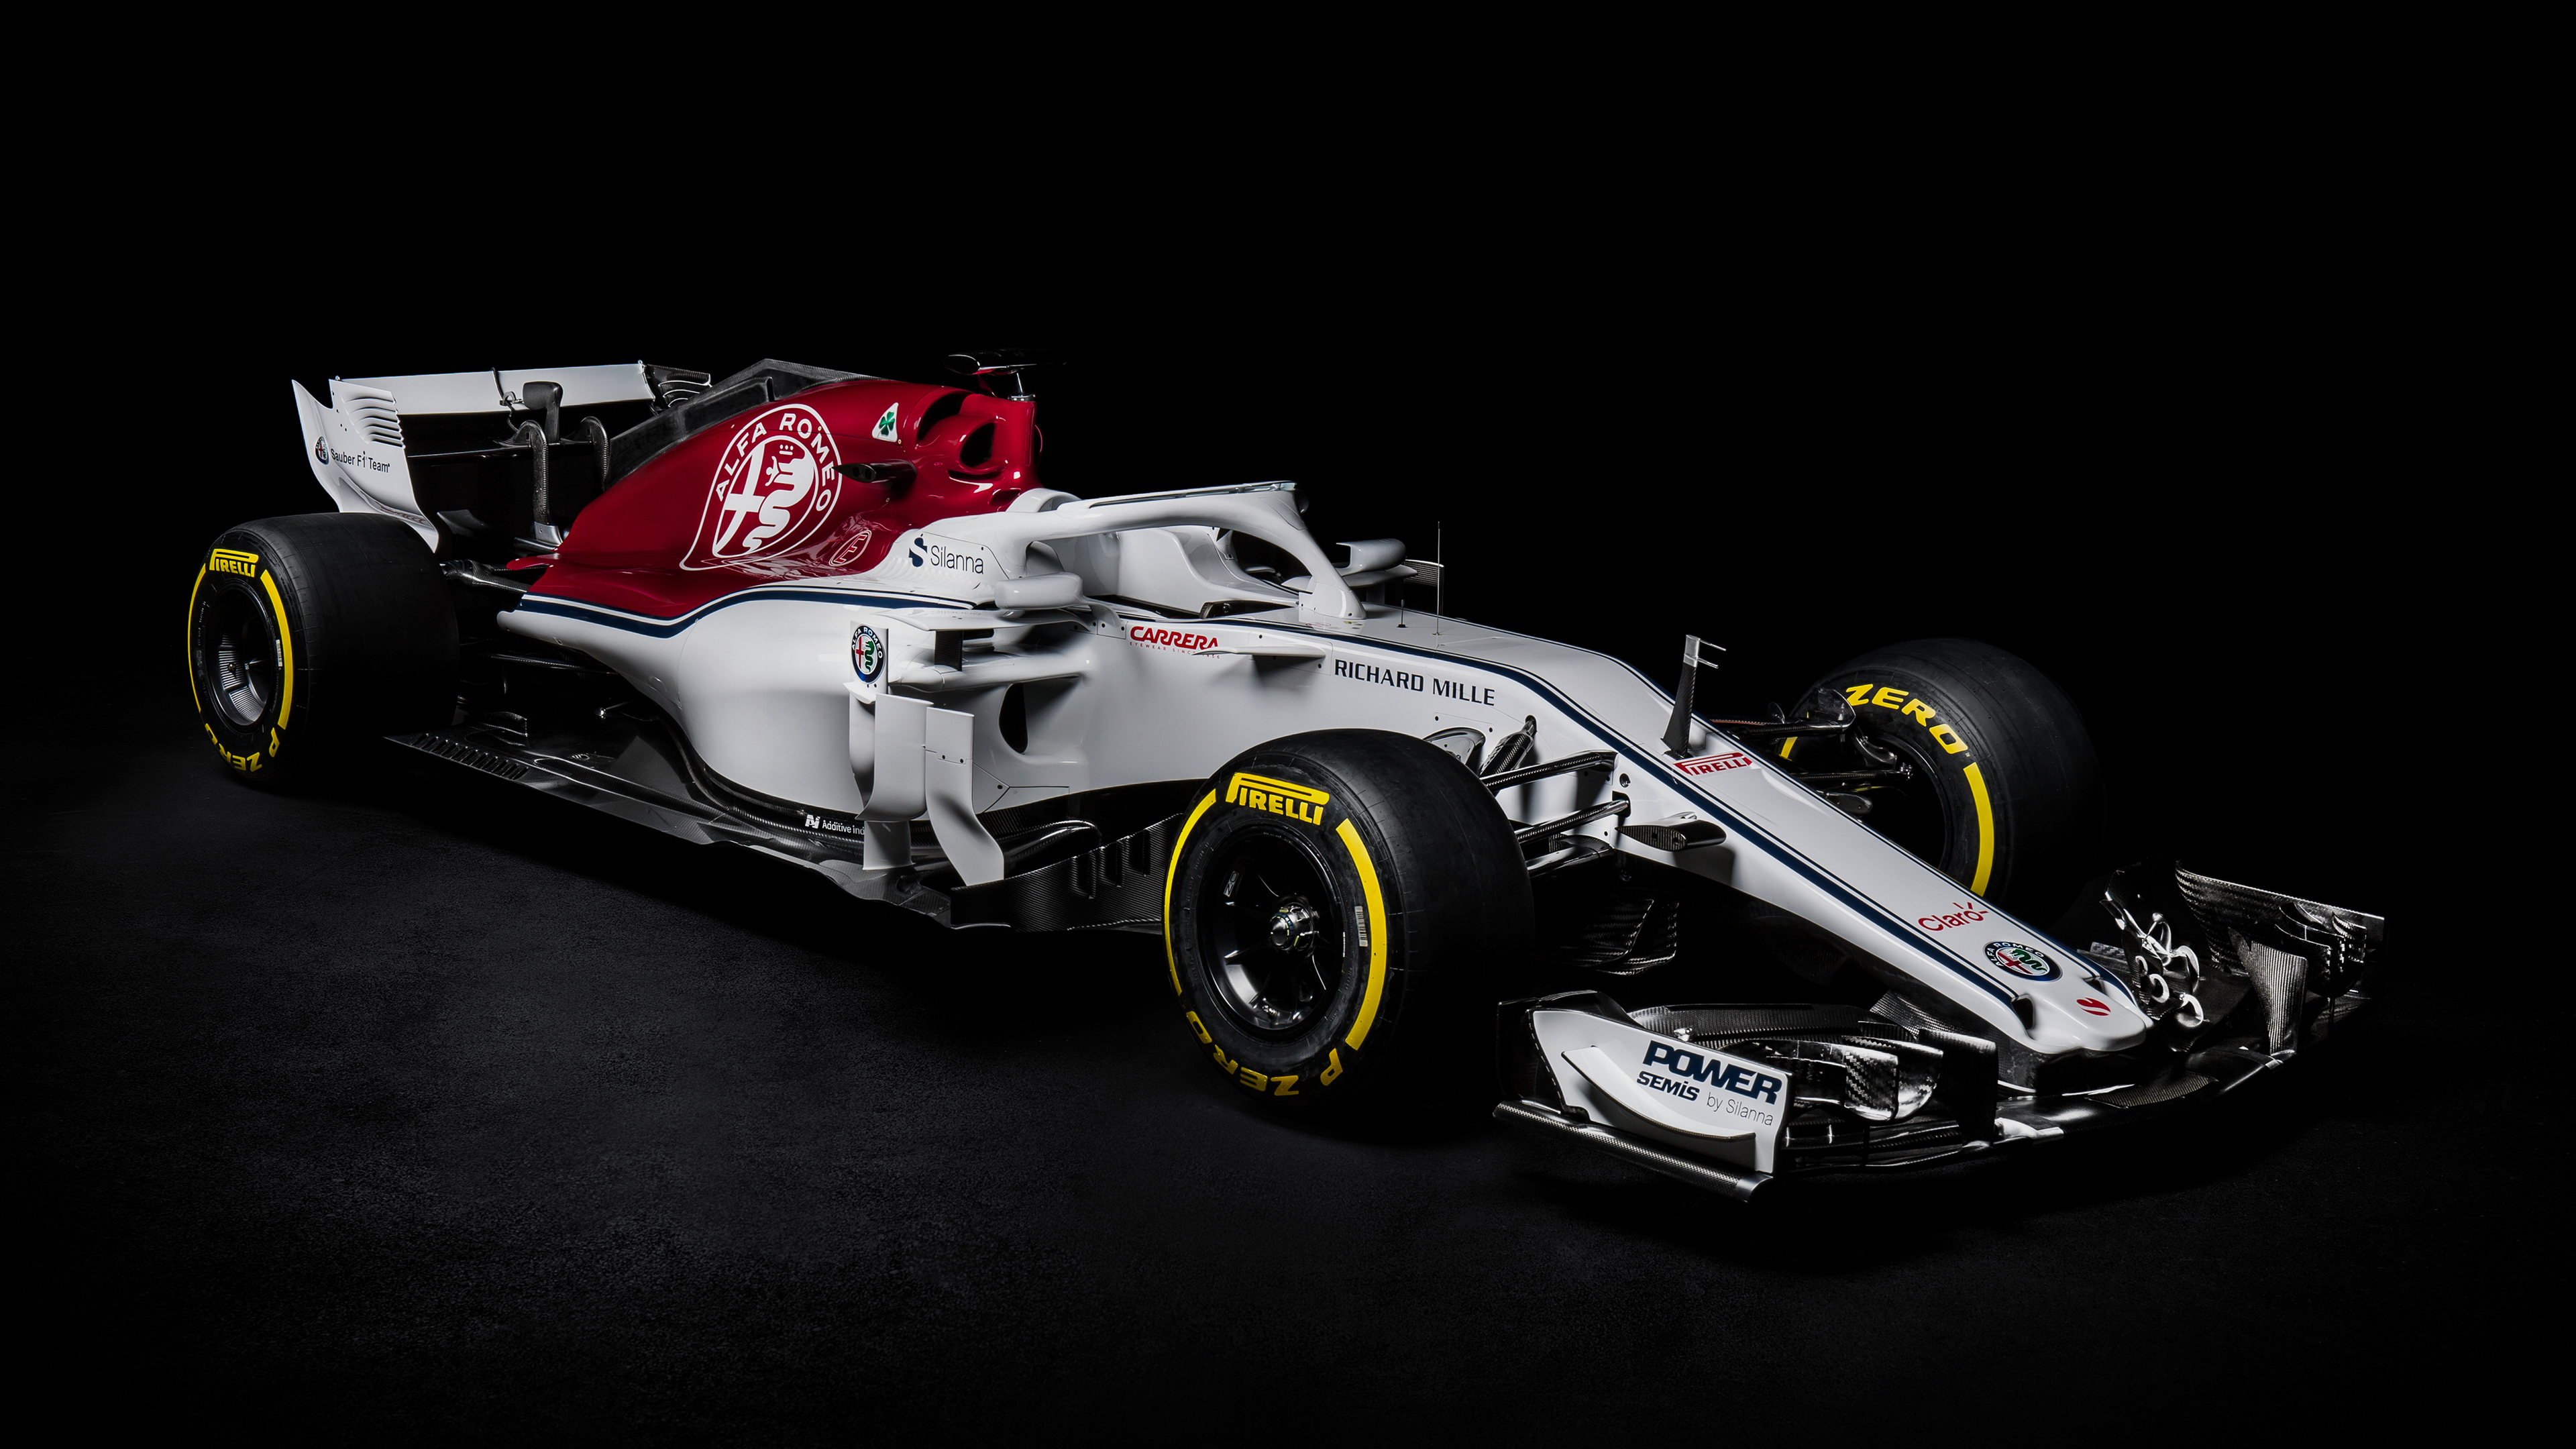 alfa romeo sauber f1 f1 2018 4k 1539792845 - Alfa Romeo Sauber F1 F1 2018 4k - track wallpapers, racing wallpapers, f1 wallpapers, cars wallpapers, 4k-wallpapers, 2018 games wallpapers